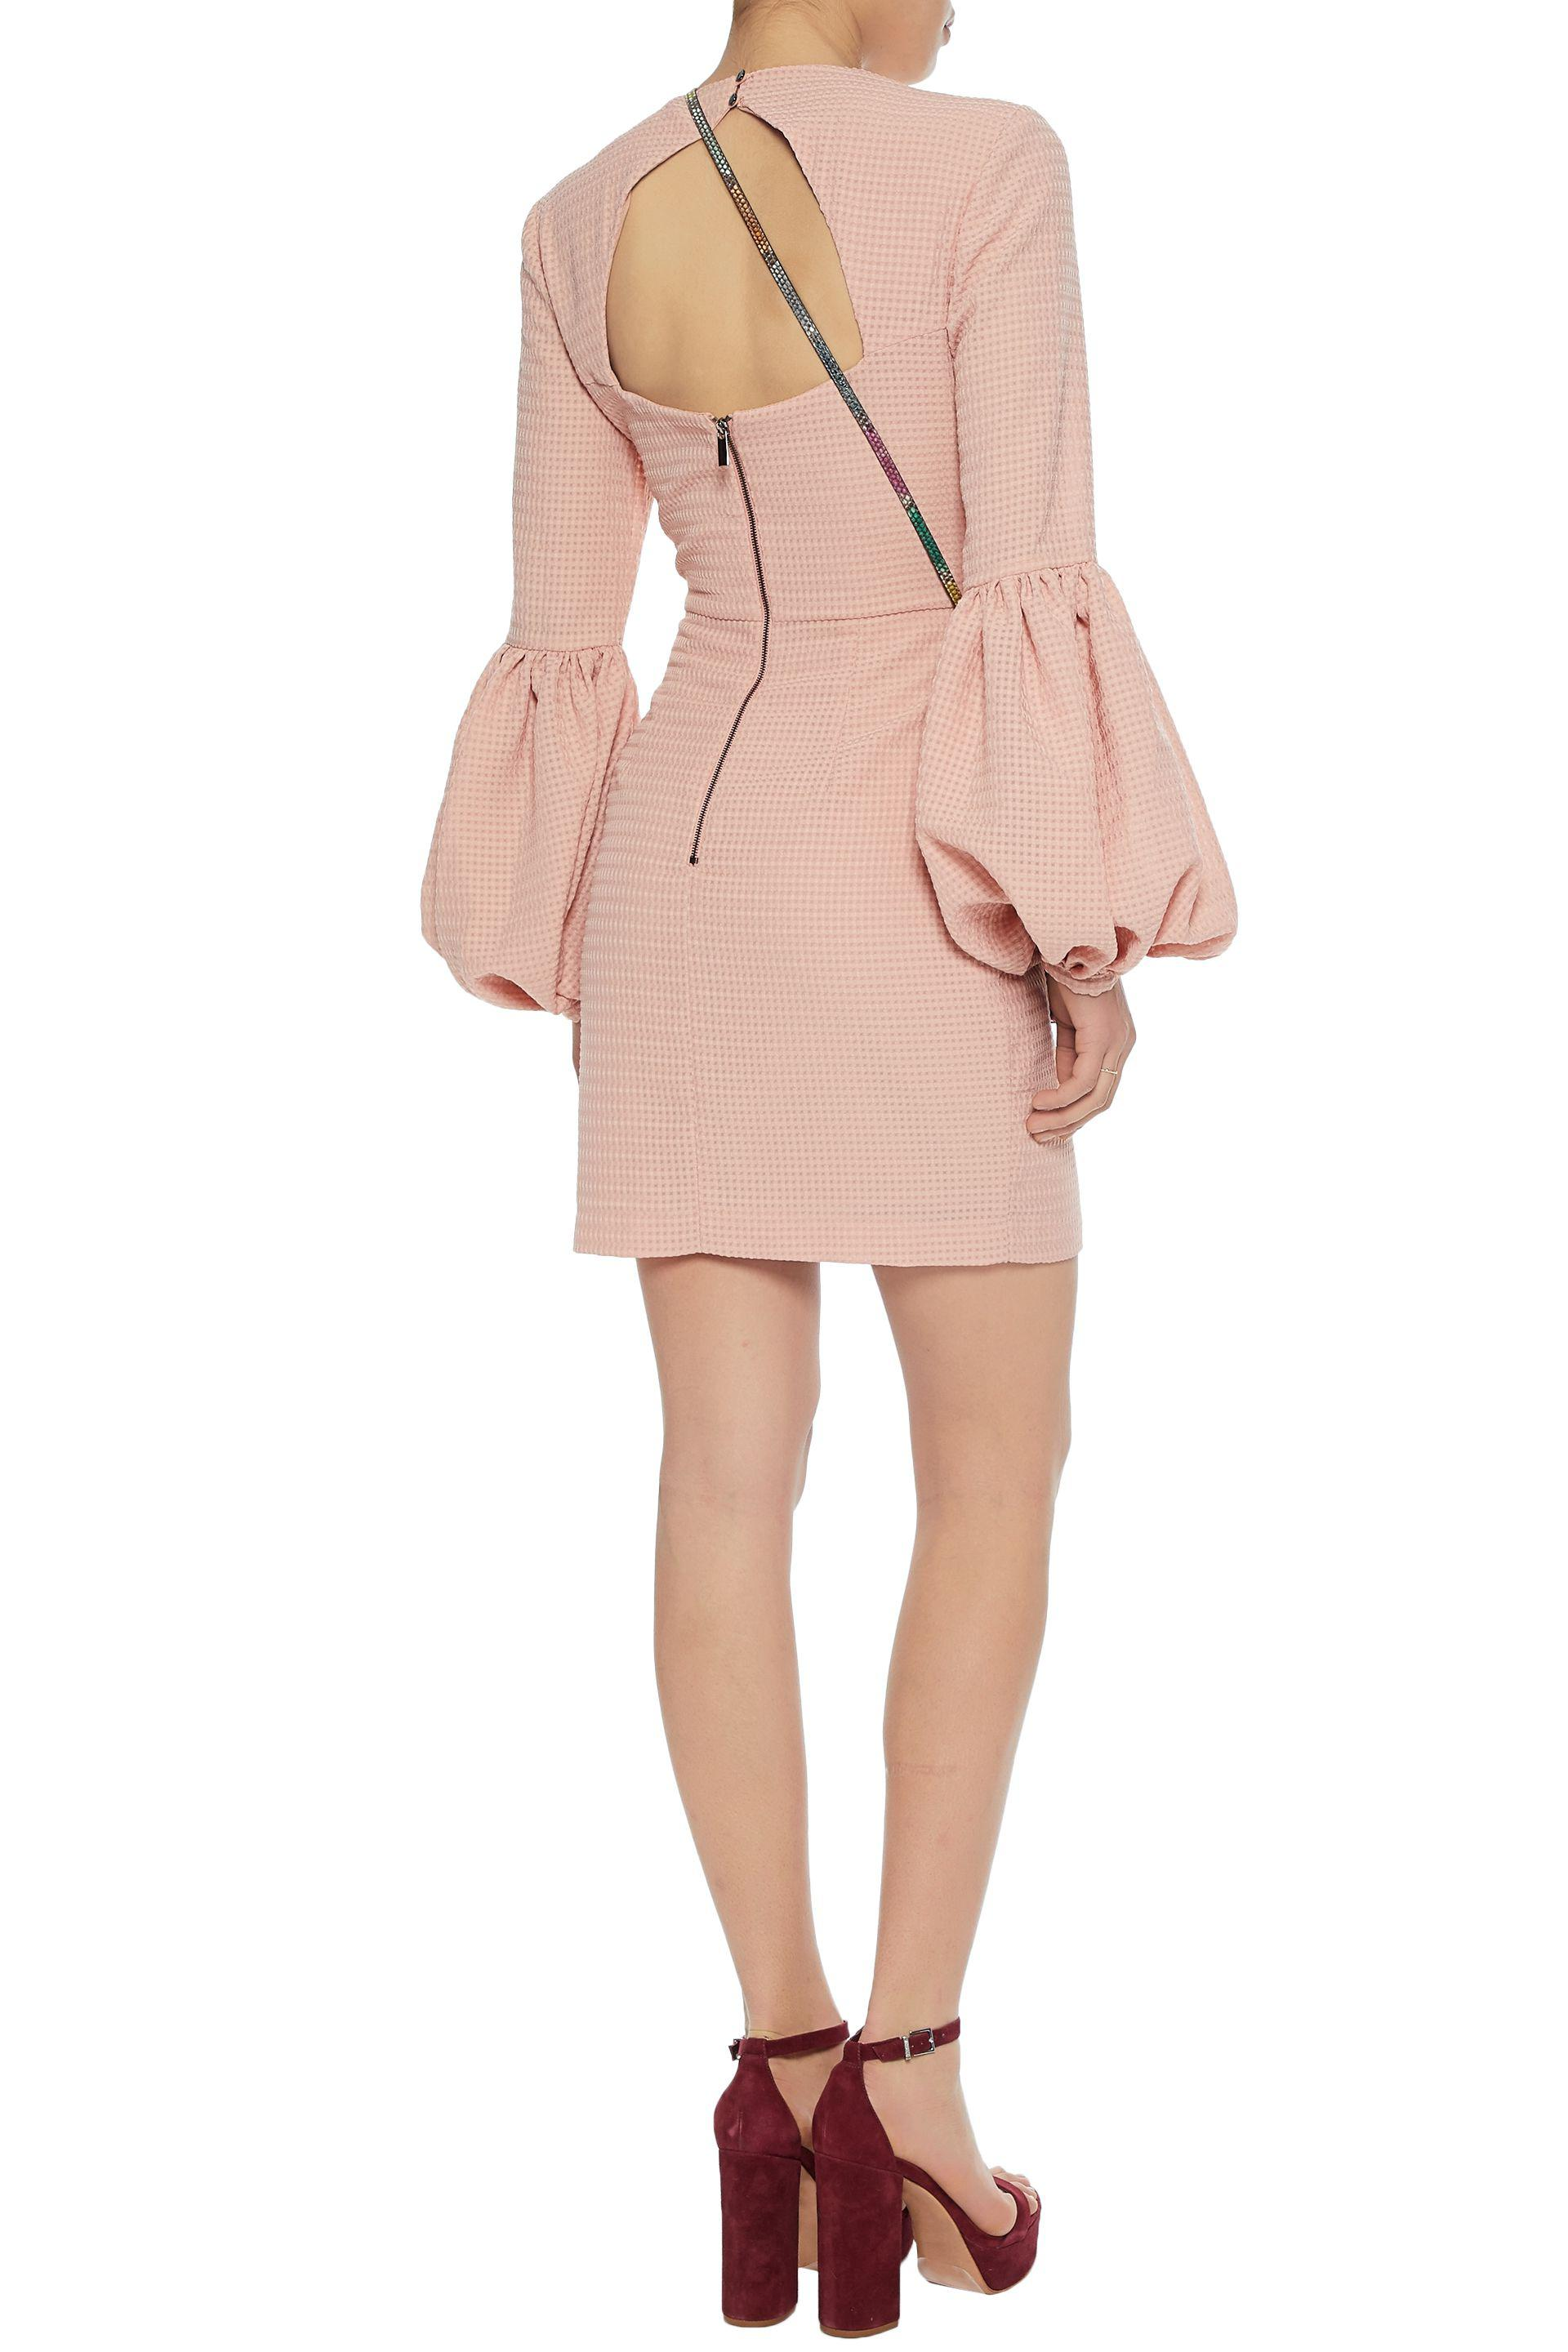 Rebecca Vallance Woman Cutout Gathered Jacquard Mini Dress Baby Pink Size 10 Rebecca Vallance Order Cheap Price Discount Real Sale Get Authentic Sast Sale Online Low Cost Cheap Online 4h6R0633al